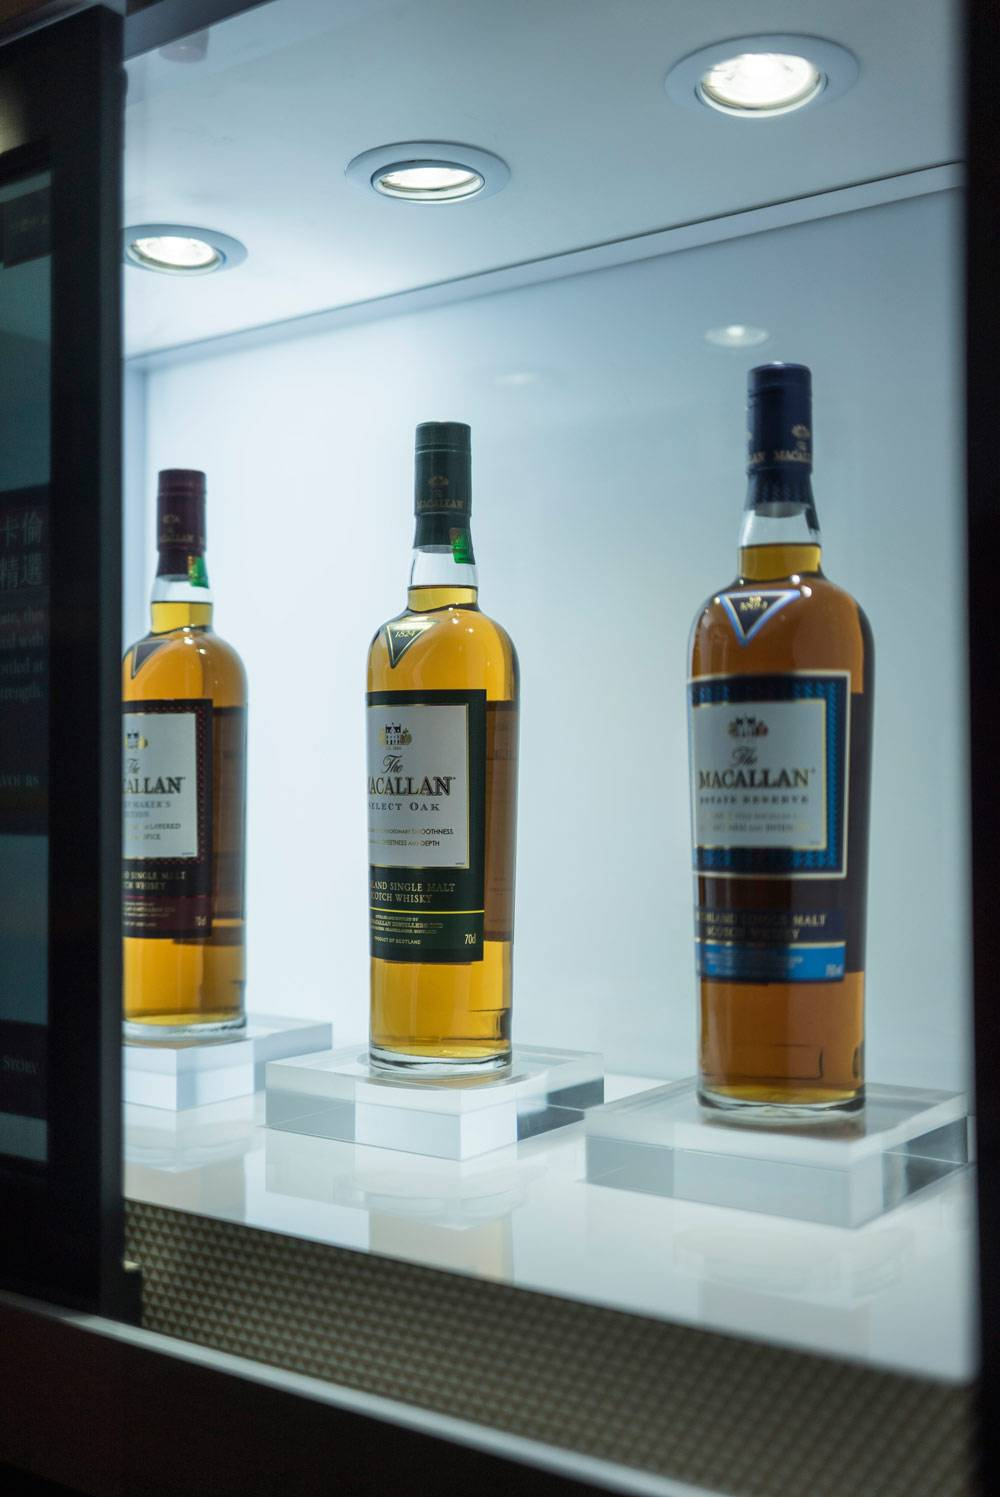 Macallan bottles of whiskey